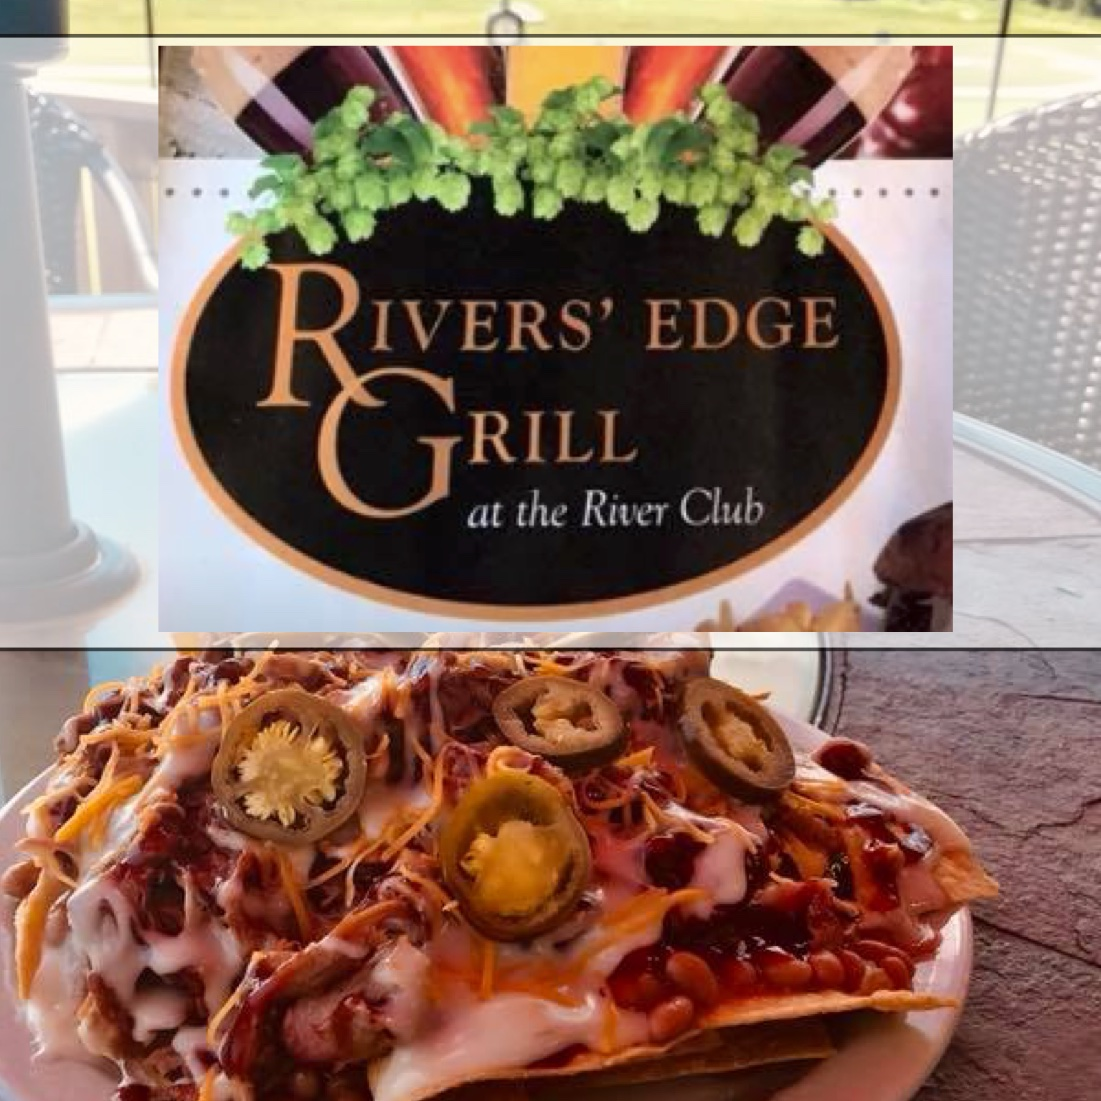 The River's Edge Grille